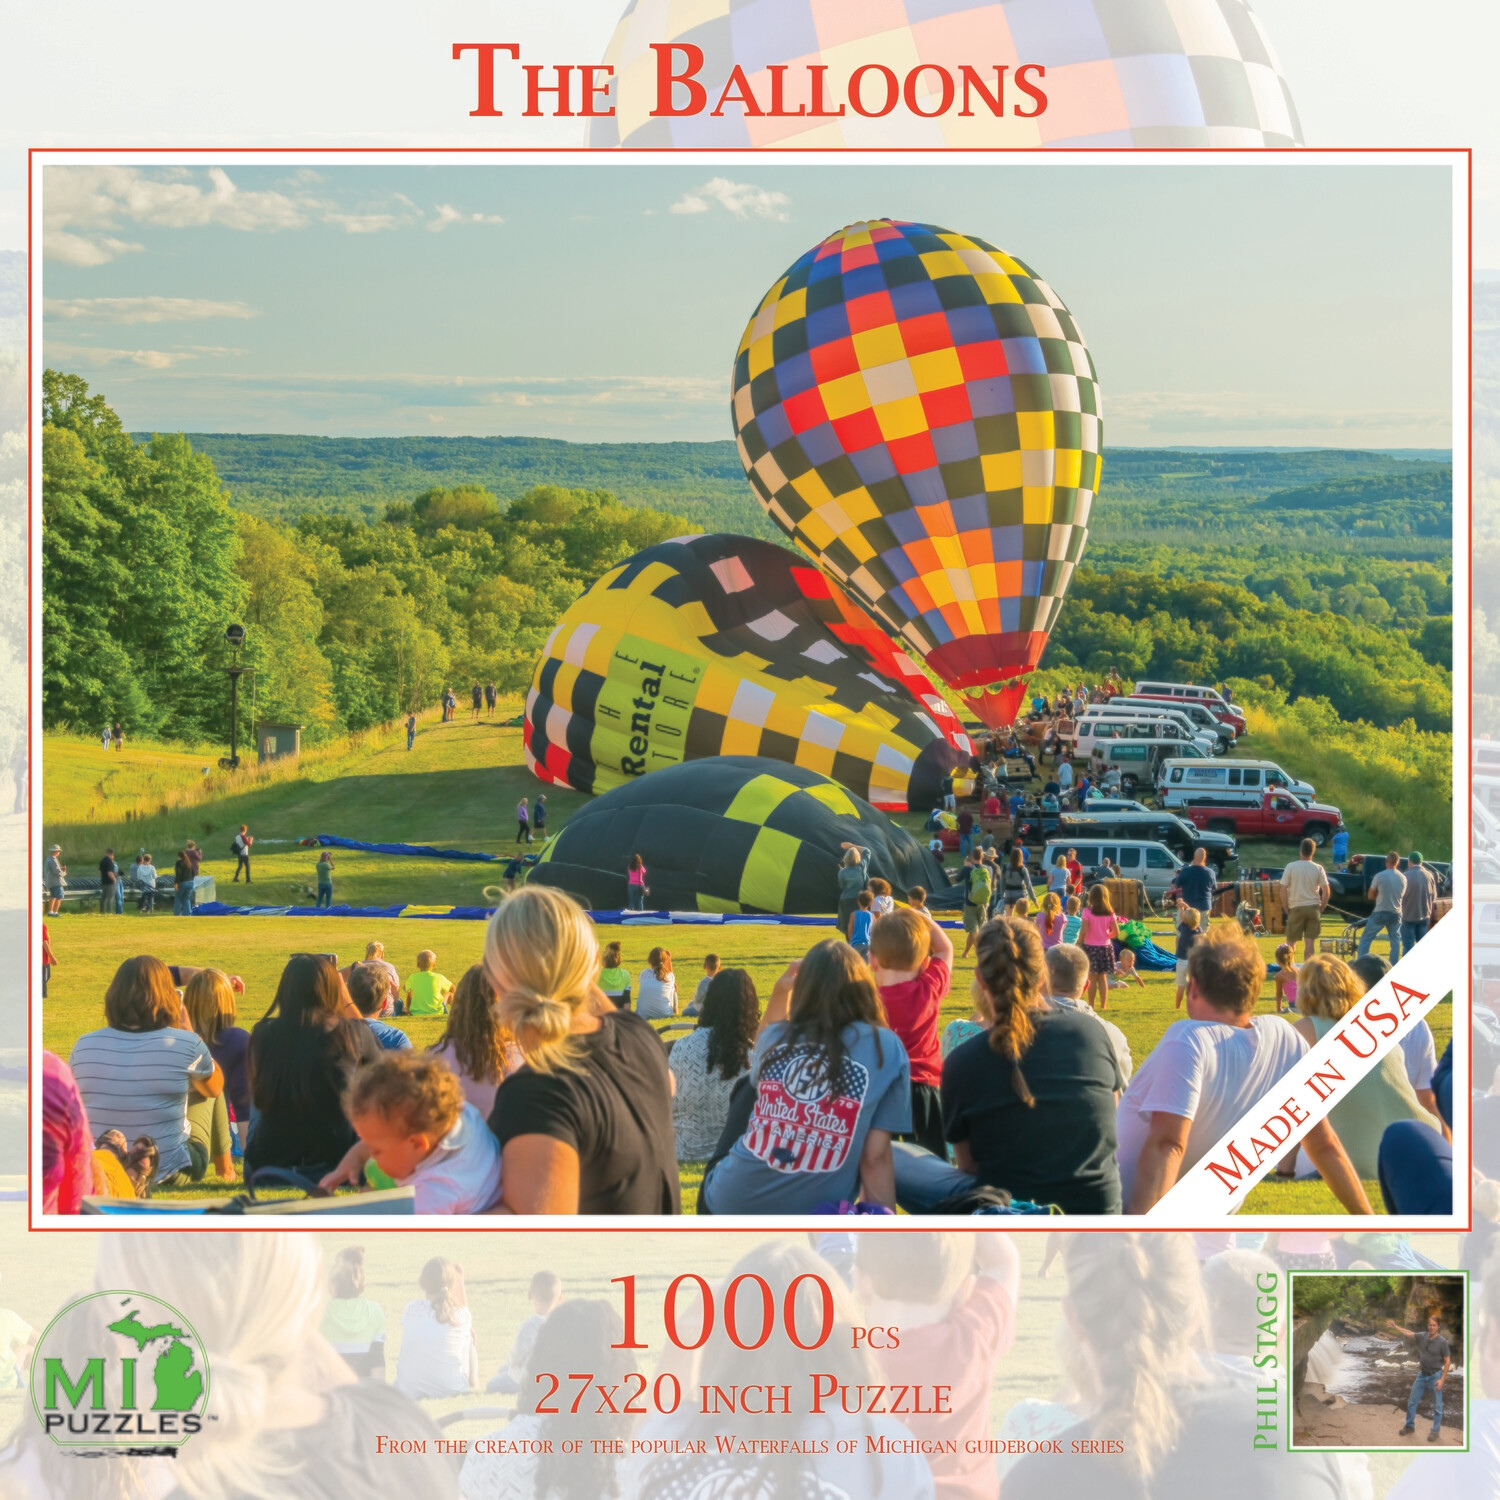 THE BALLOONS - 1,000 PIECE